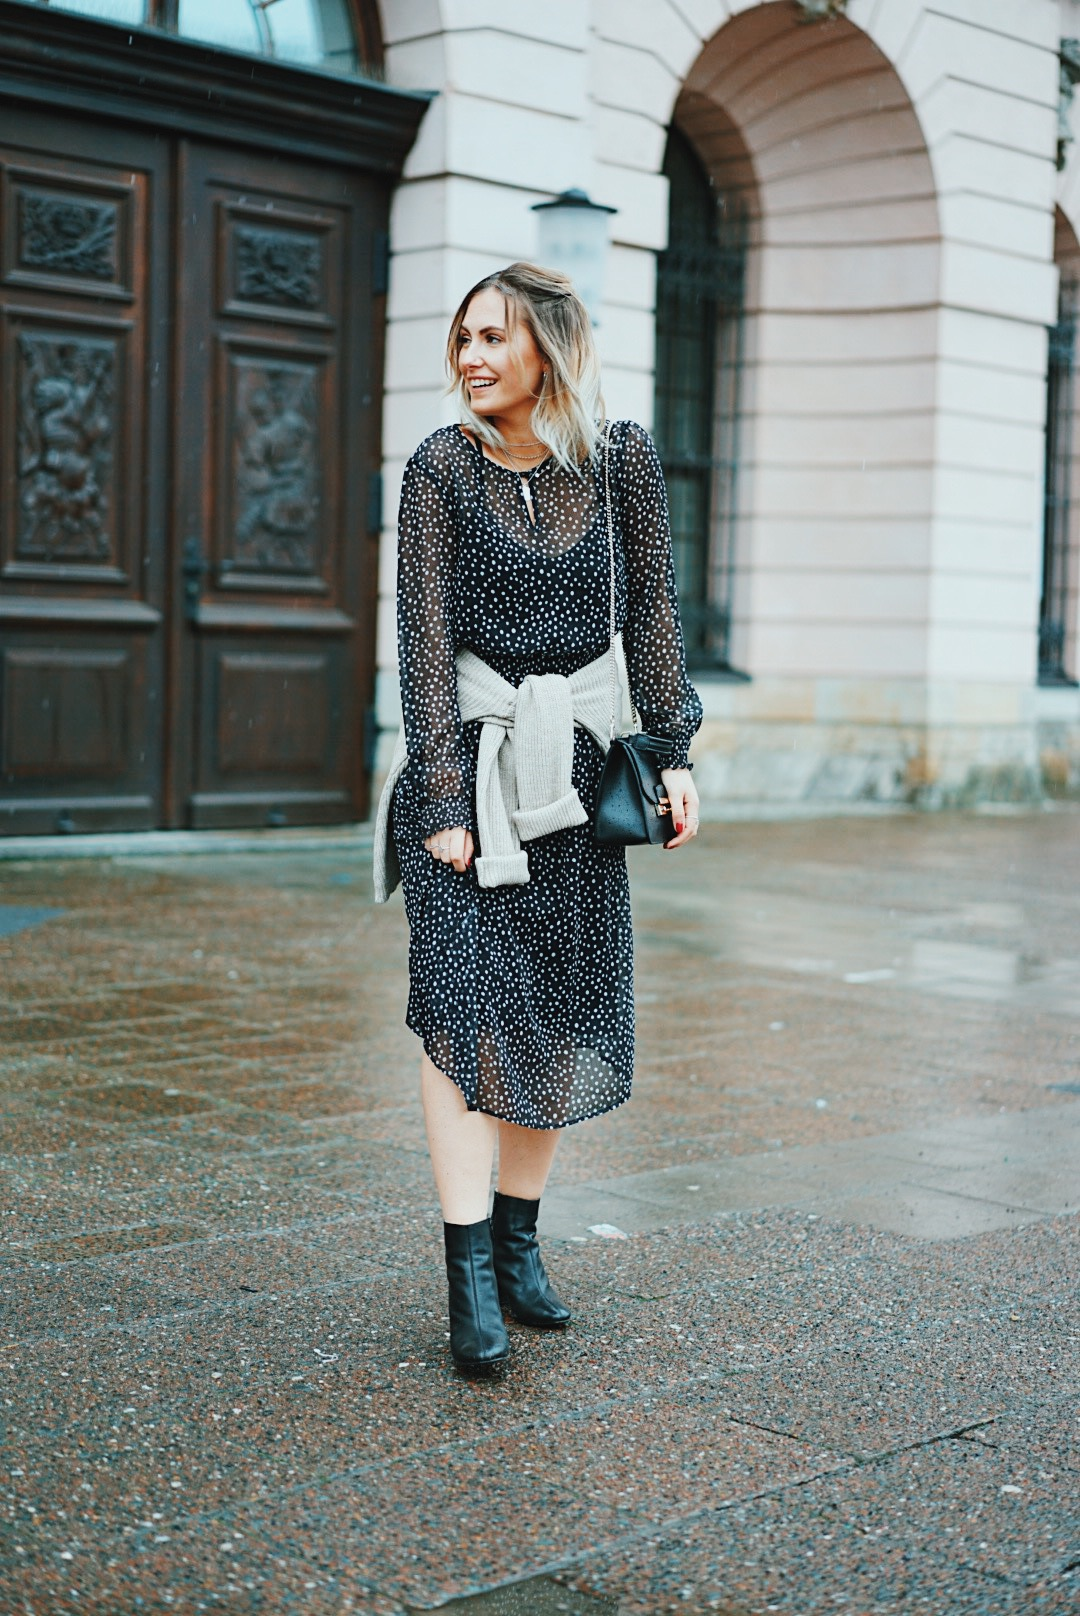 casual-chic-look-esprit-fashion-fashion-for-ffranzy-modeblogger-fashionblogger-cologne-koeln-lifestyleblogger-deutschland